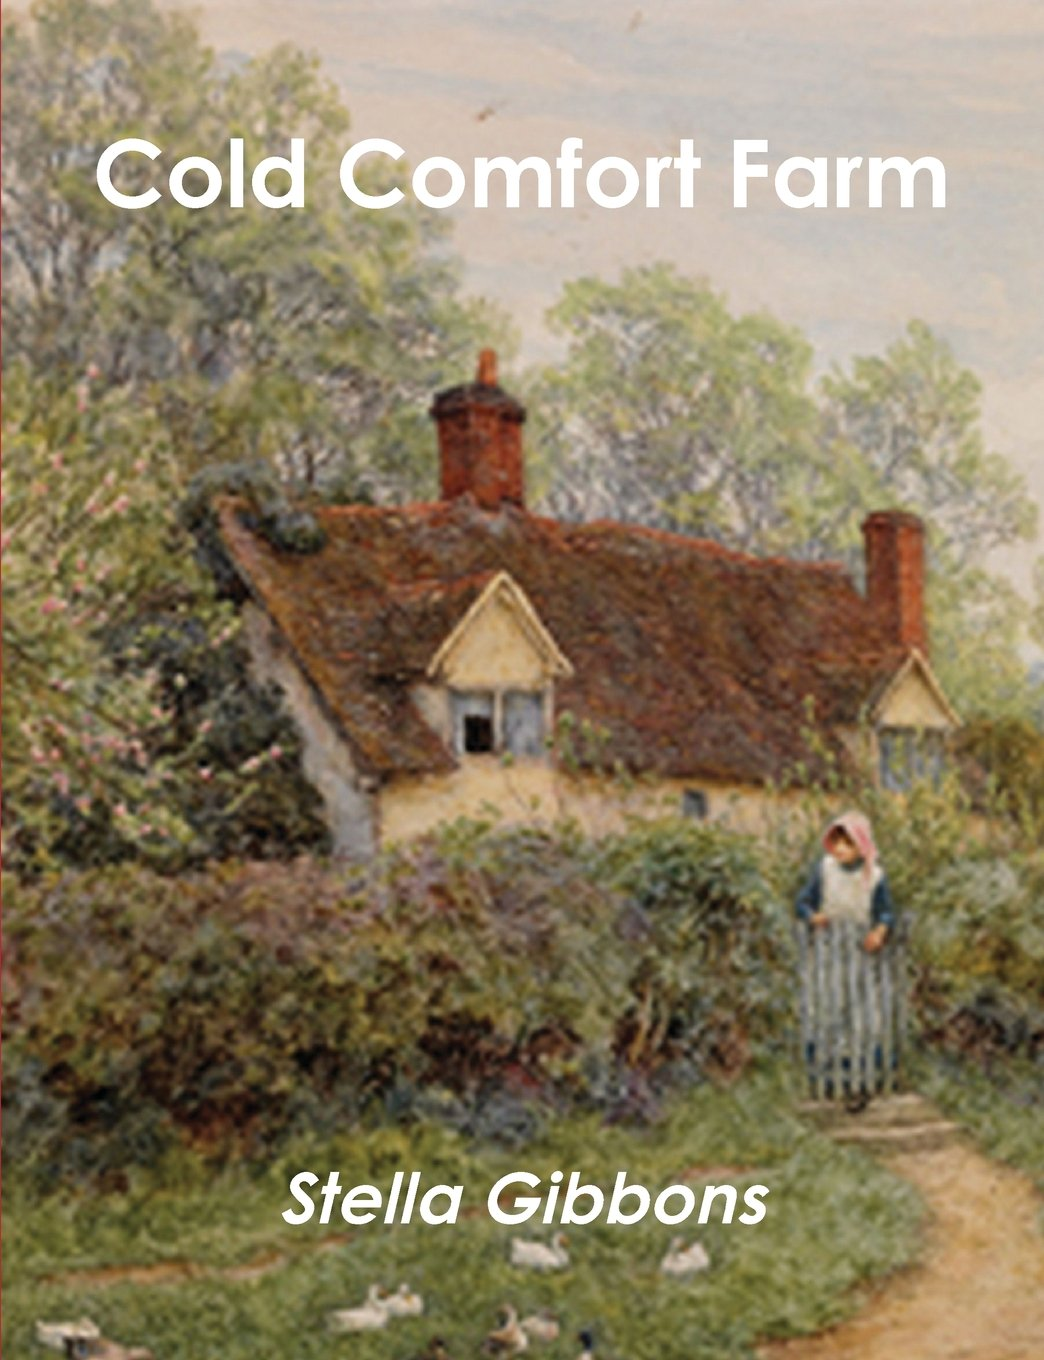 Personal Response to Cold Comfort Farm